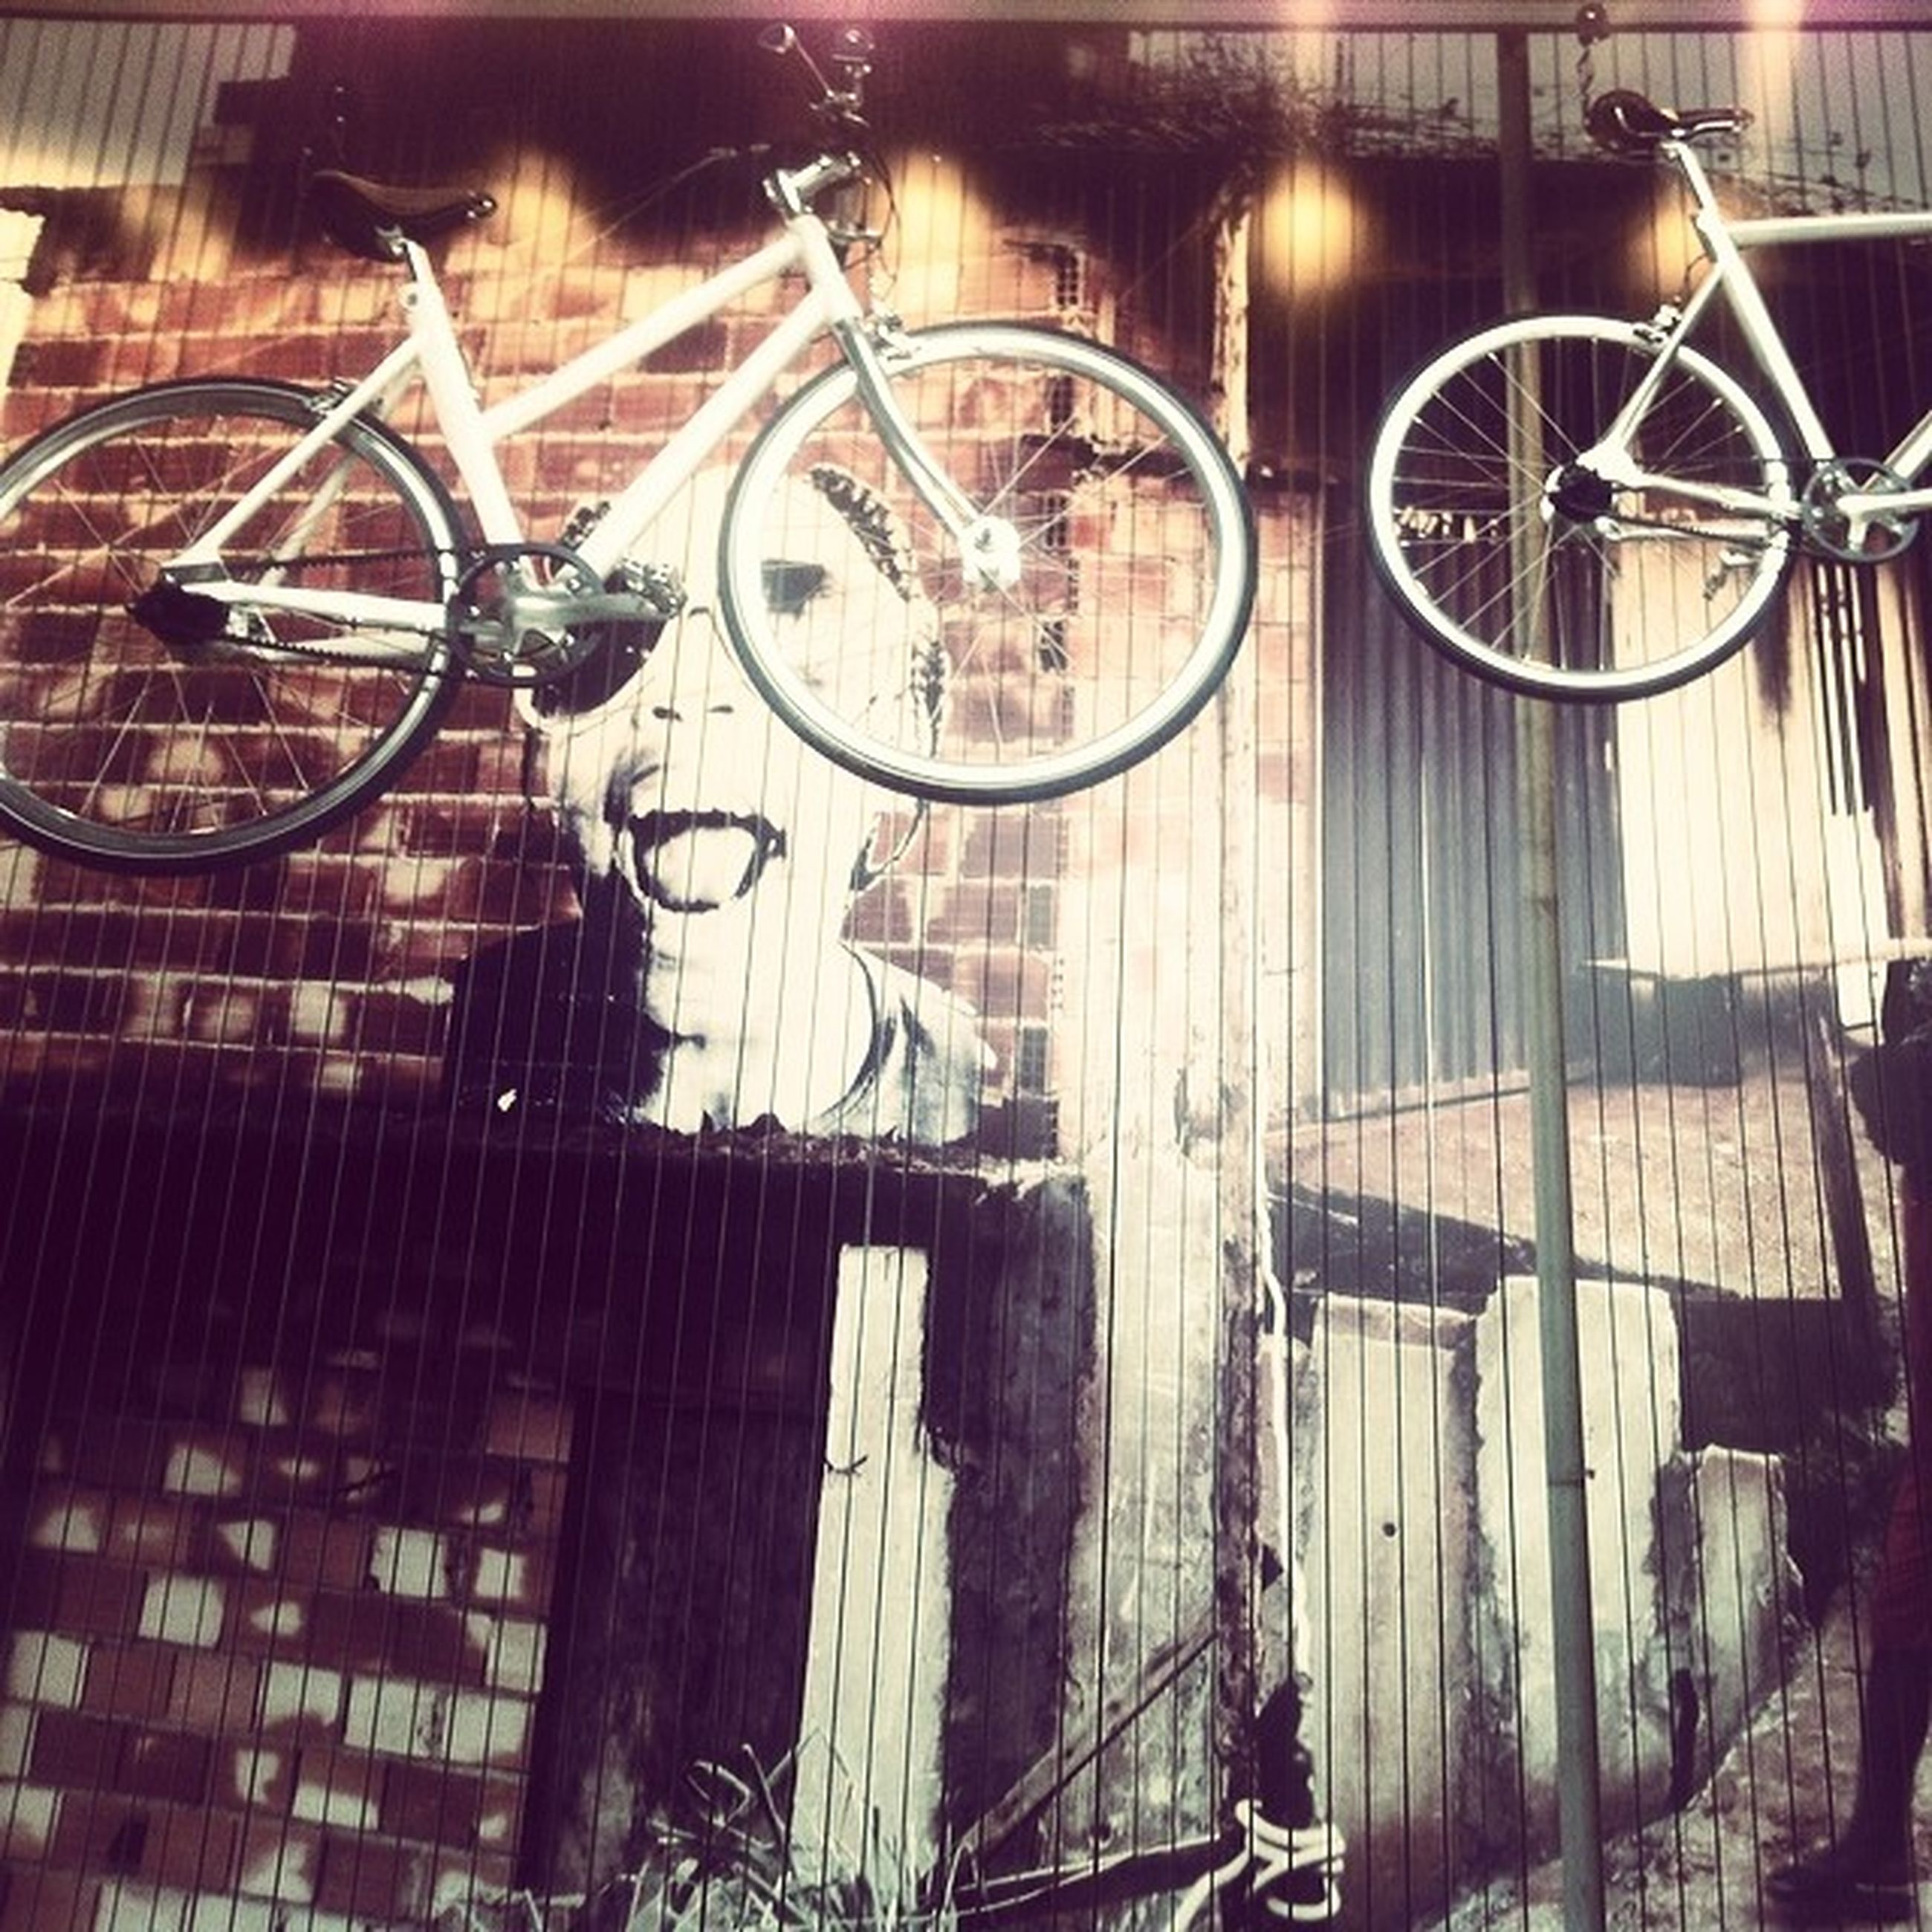 bicycle, transportation, built structure, building exterior, architecture, mode of transport, land vehicle, wheel, stationary, night, parking, metal, outdoors, wall - building feature, art and craft, street, art, no people, city, arts culture and entertainment